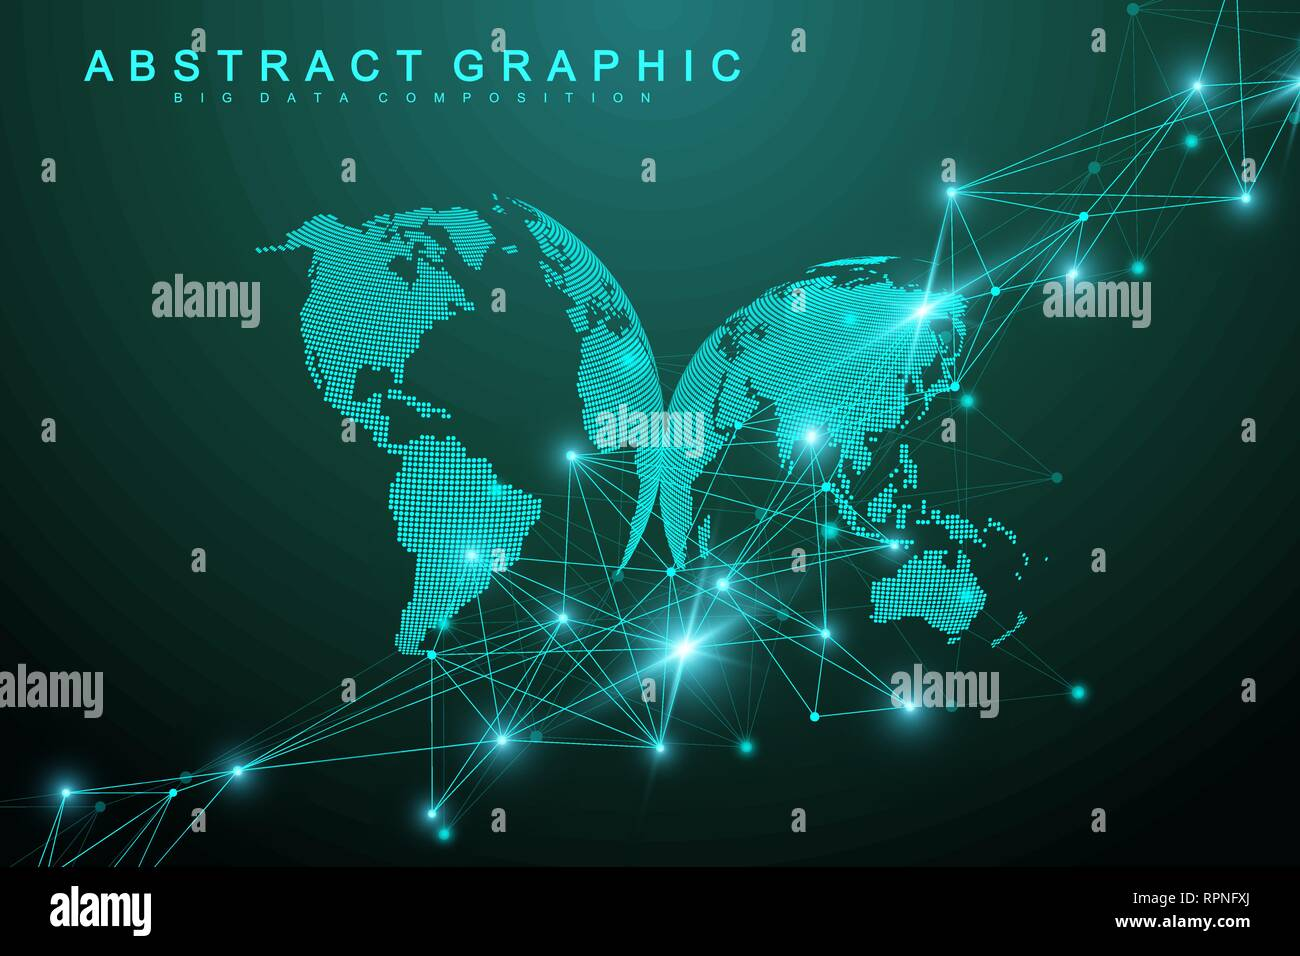 Big data visualization  Graphic abstract background communication